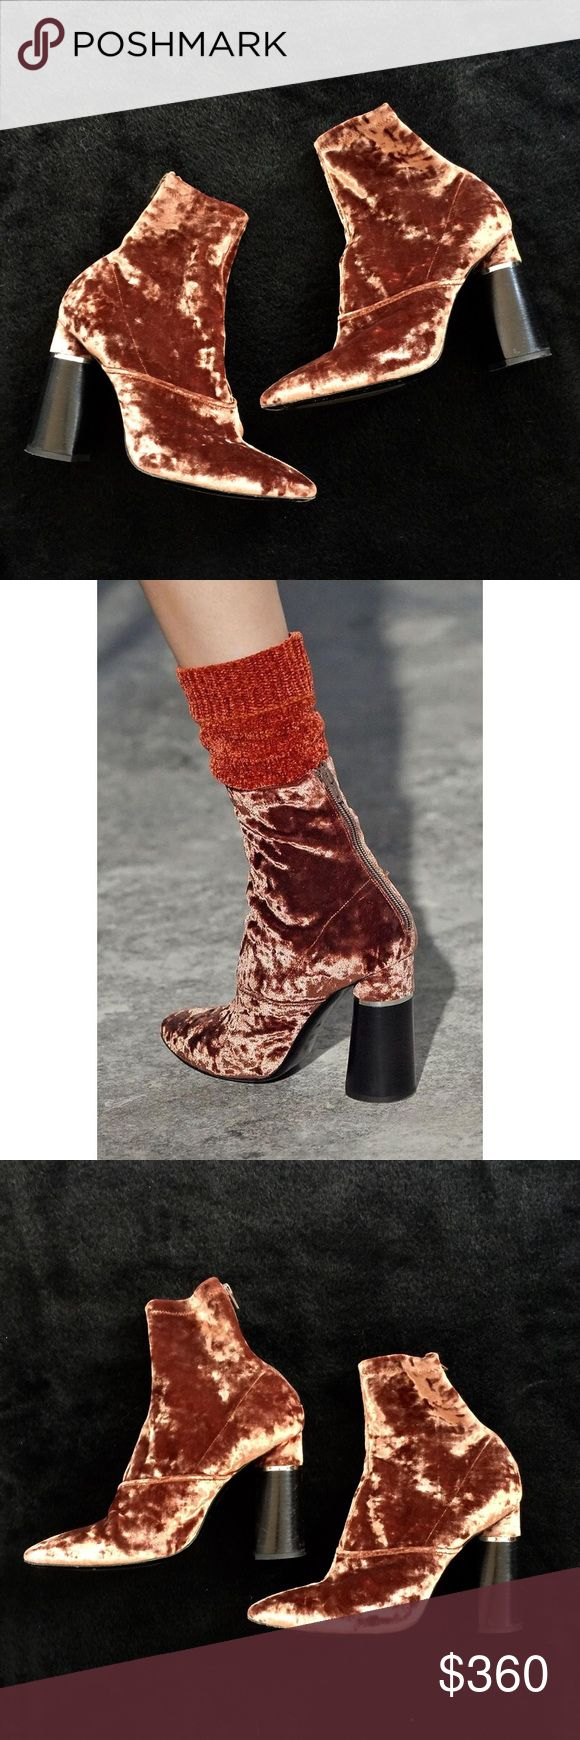 3.1 Phillip Lim Crushed Velvet Boots, 9.5 RARE COLOR worn during the runway shows and only sold at selected boutiques. Purchased full price by me and only worn 3 times. Still in excellent condition. An incredible pair of boots!!!!   Color changes depending on the way the light is hitting it. Goes from a dark saffron to a more pale pinkish-orange.  Size 9.5. Fits true. 3.1 Phillip Lim Shoes Ankle Boots & Booties